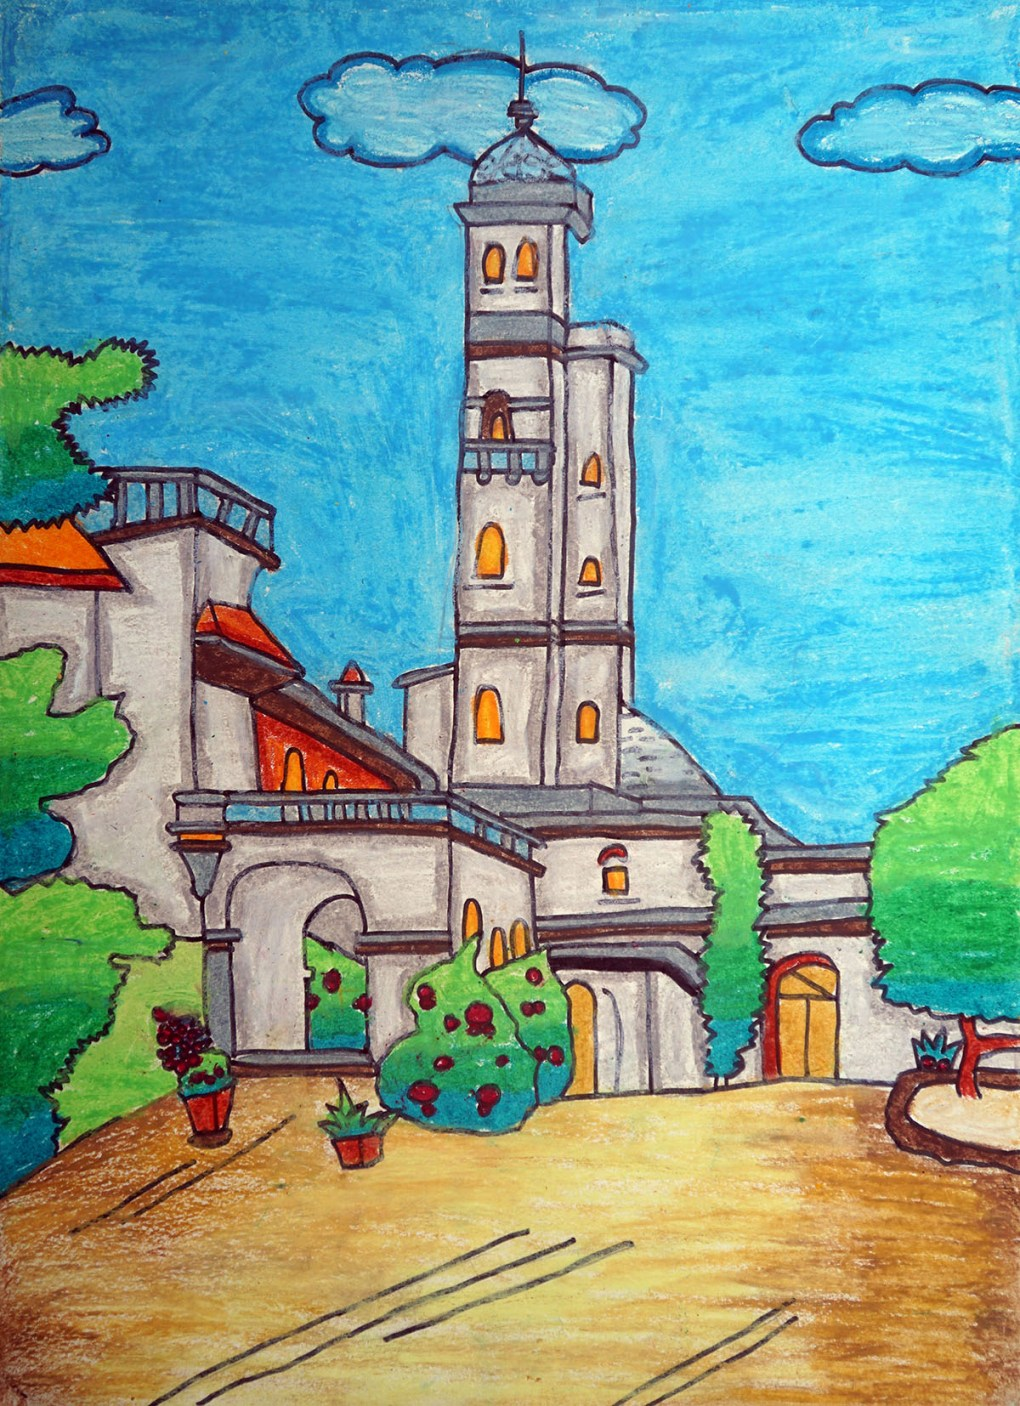 Pune university painting by child artist Siddharth Karambelkar from DES School, Pune - medal winner from Khula Aasmaan child art competition